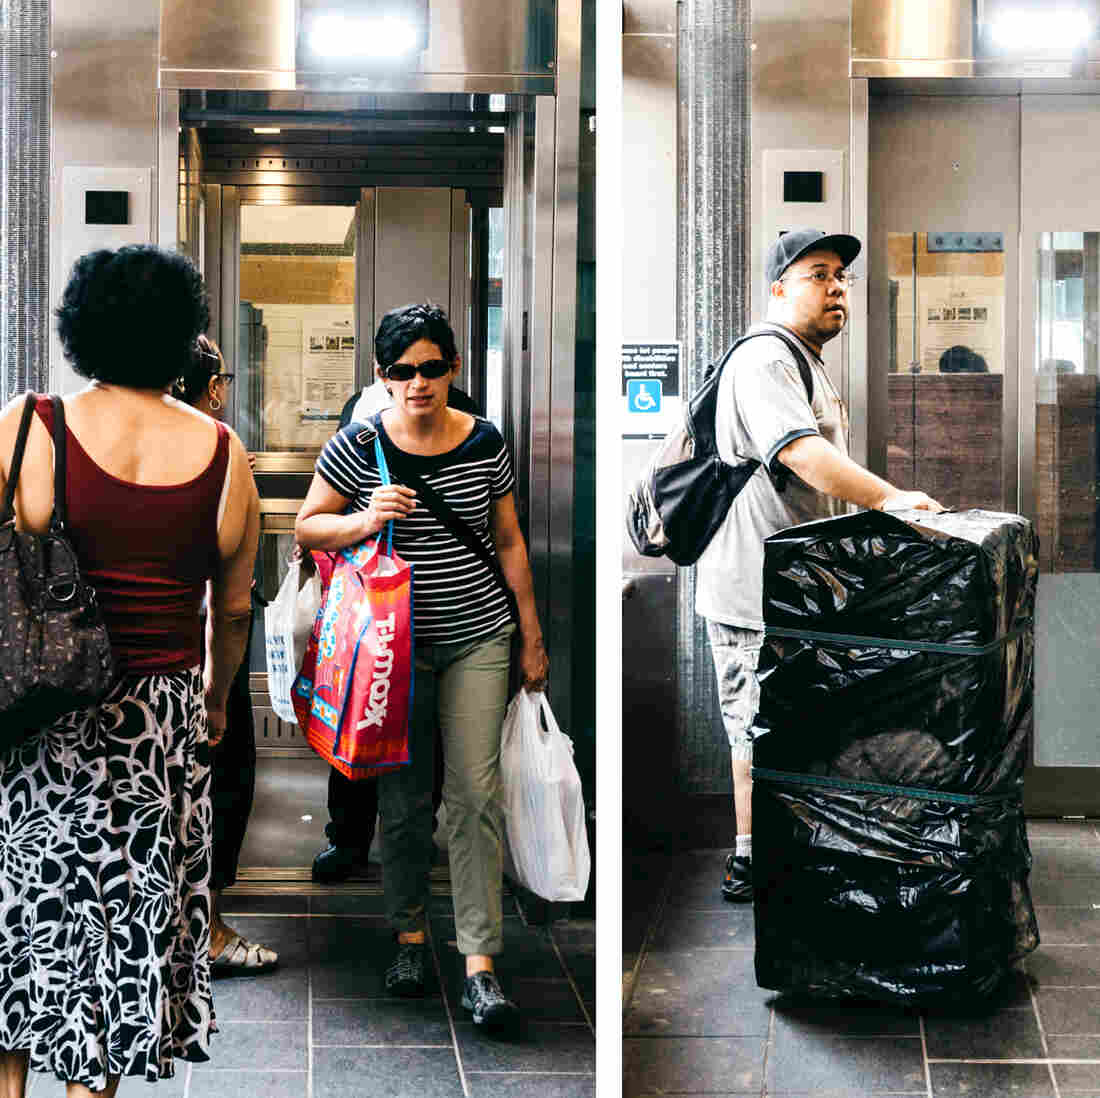 """This elevator is a gift from the disability community and the ADA to the nondisabled people of New York,"" says Attorney Wolinsky, who co-founded Disability Rights Advocates. The elevator at the Dyckman Street Subway Station in Inwood, Manhattan, helps people of all abilities reach the platform."